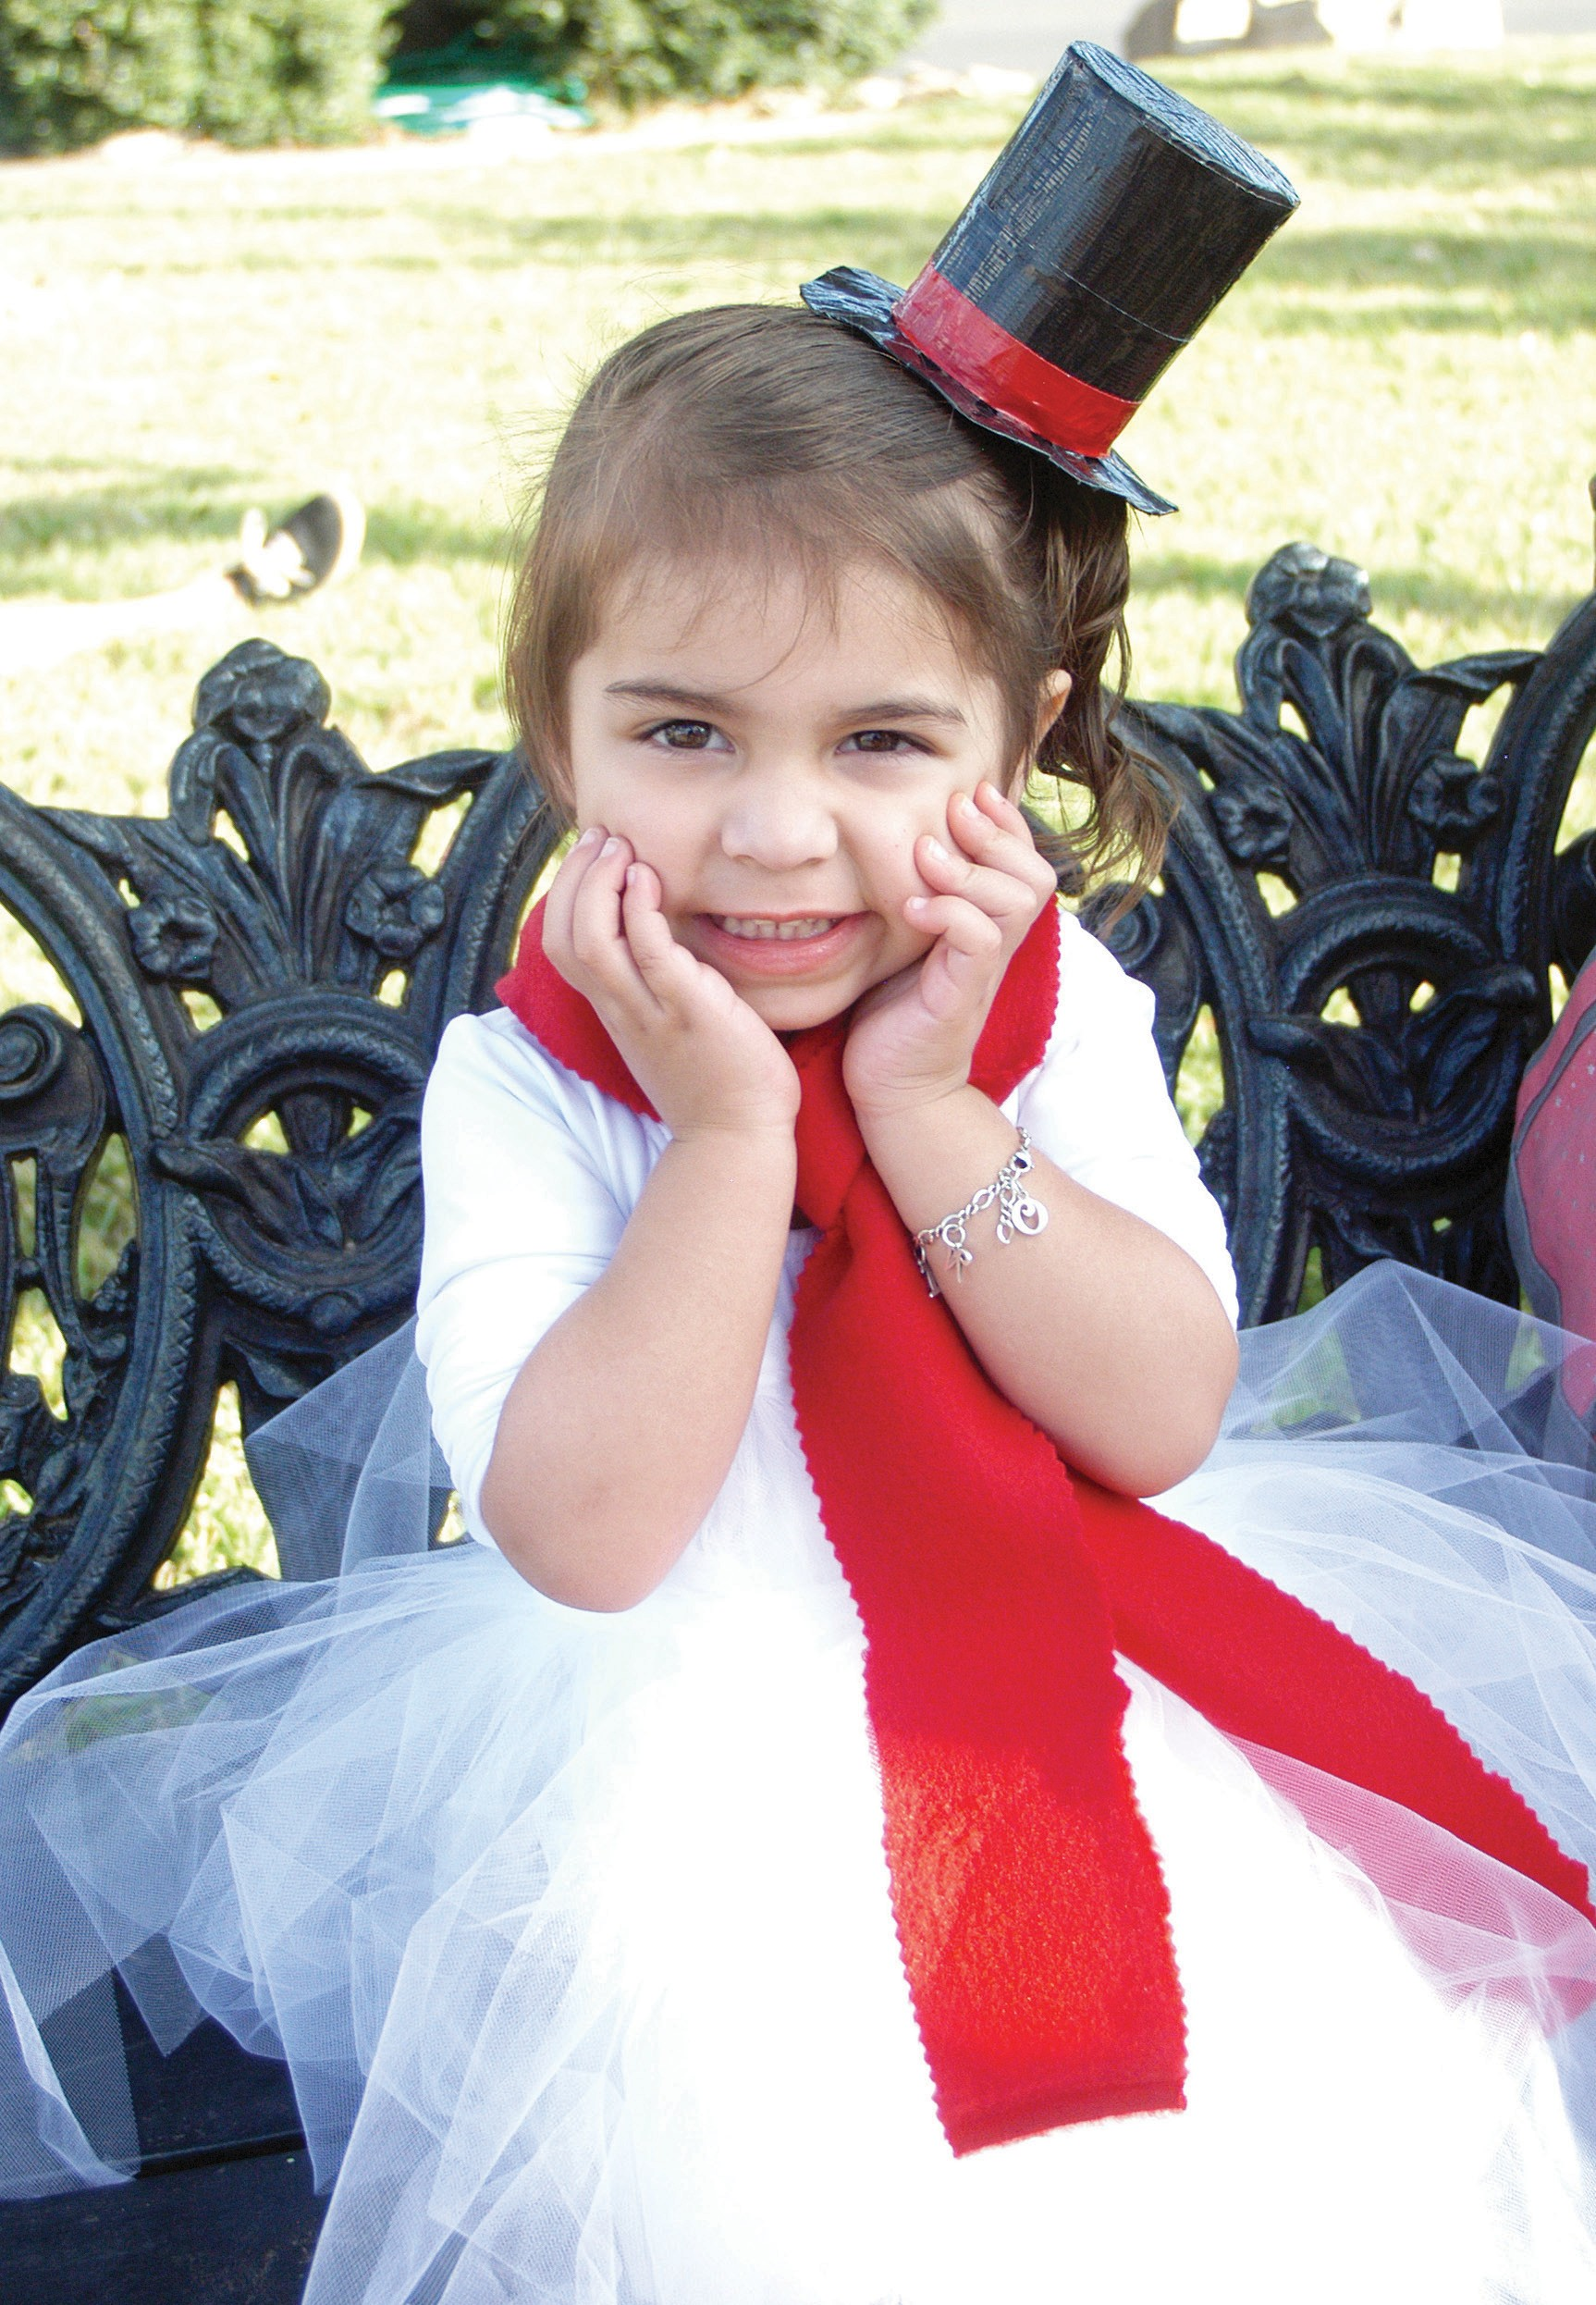 """""""Oh by gosh, by golly... I hope I don't melt,"""" says little Rossalyn Bazan. She danced to """"Frosty the Snowman"""" at the Brush Country Christmas with Kid Nation earlier this month. A warm South Texas greeting wishing everyone a safe, happy and healthy Christmas."""